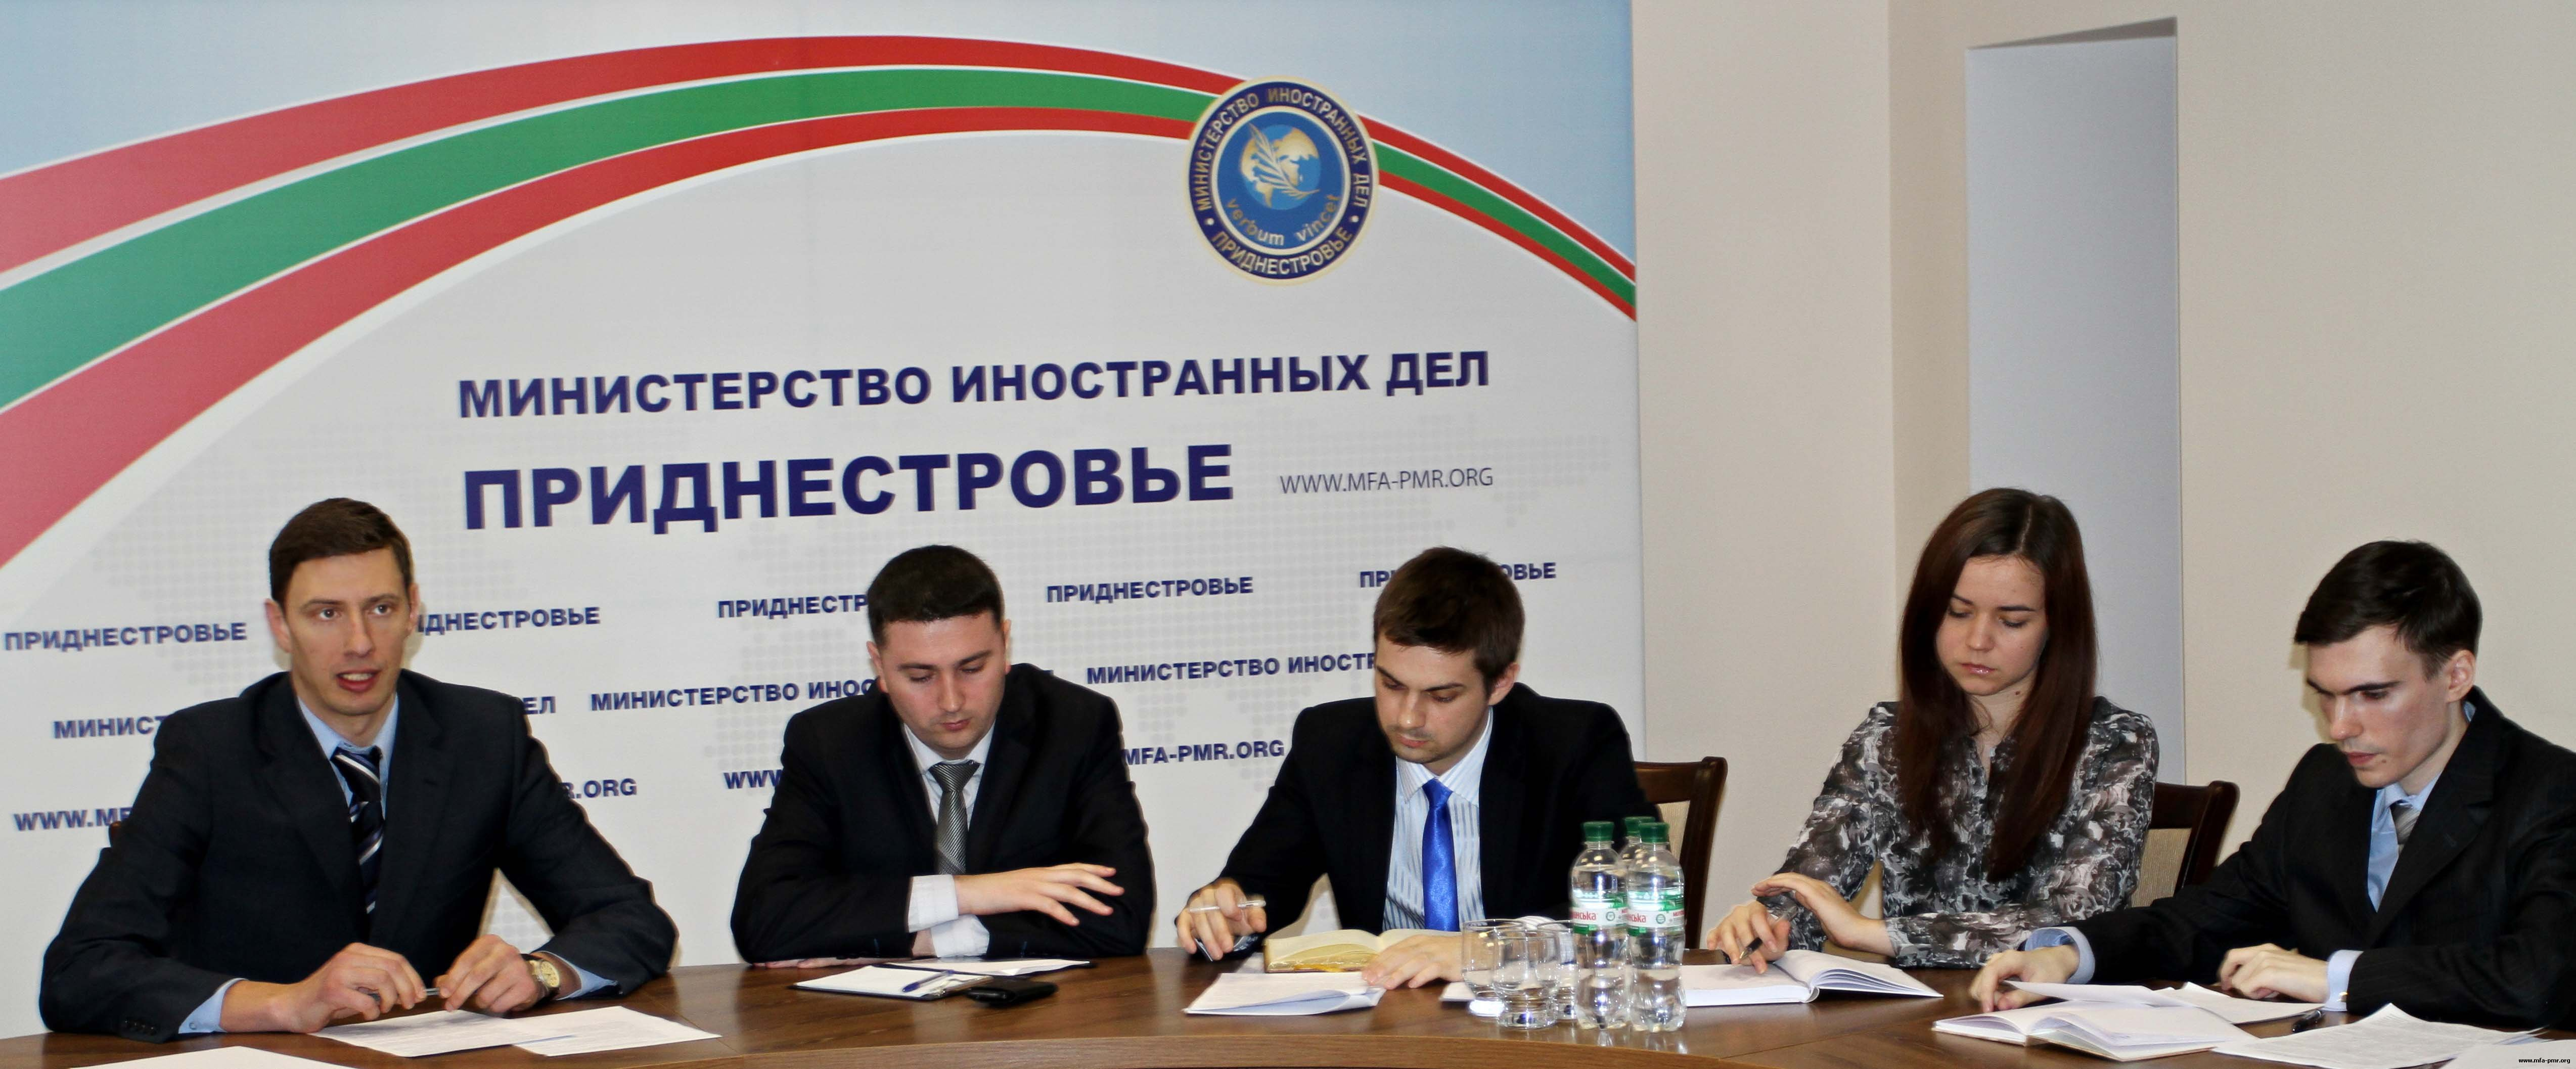 """Public-Expert Council under the MFA of the PMR Discussed Economic Aspects of the """"Eurasian Region Pridnestrovie"""" Project"""